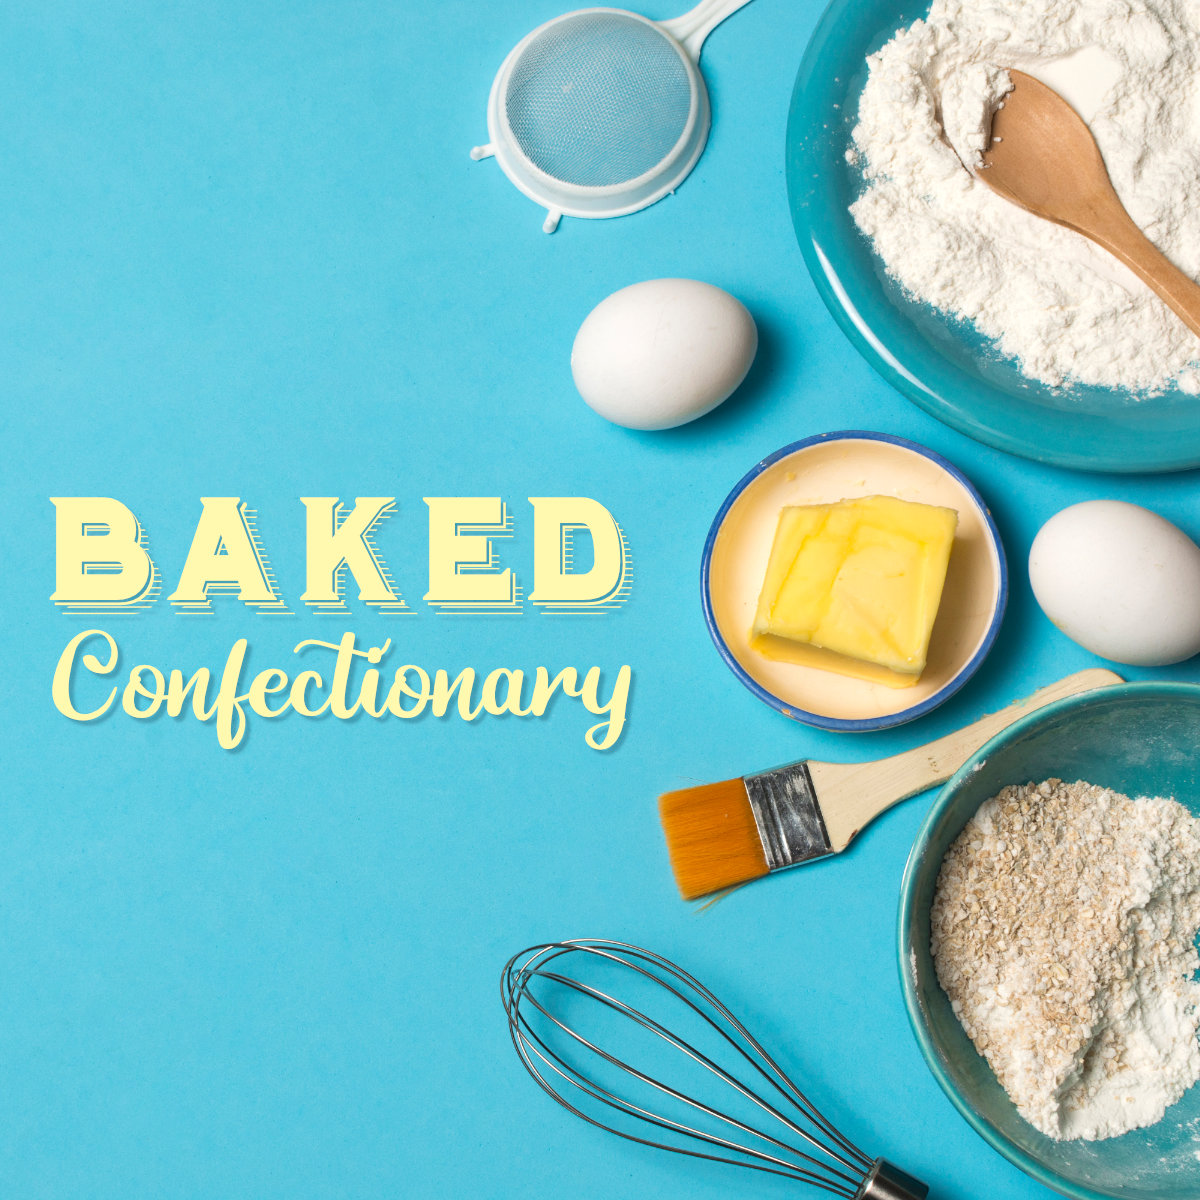 Baked Confectionary